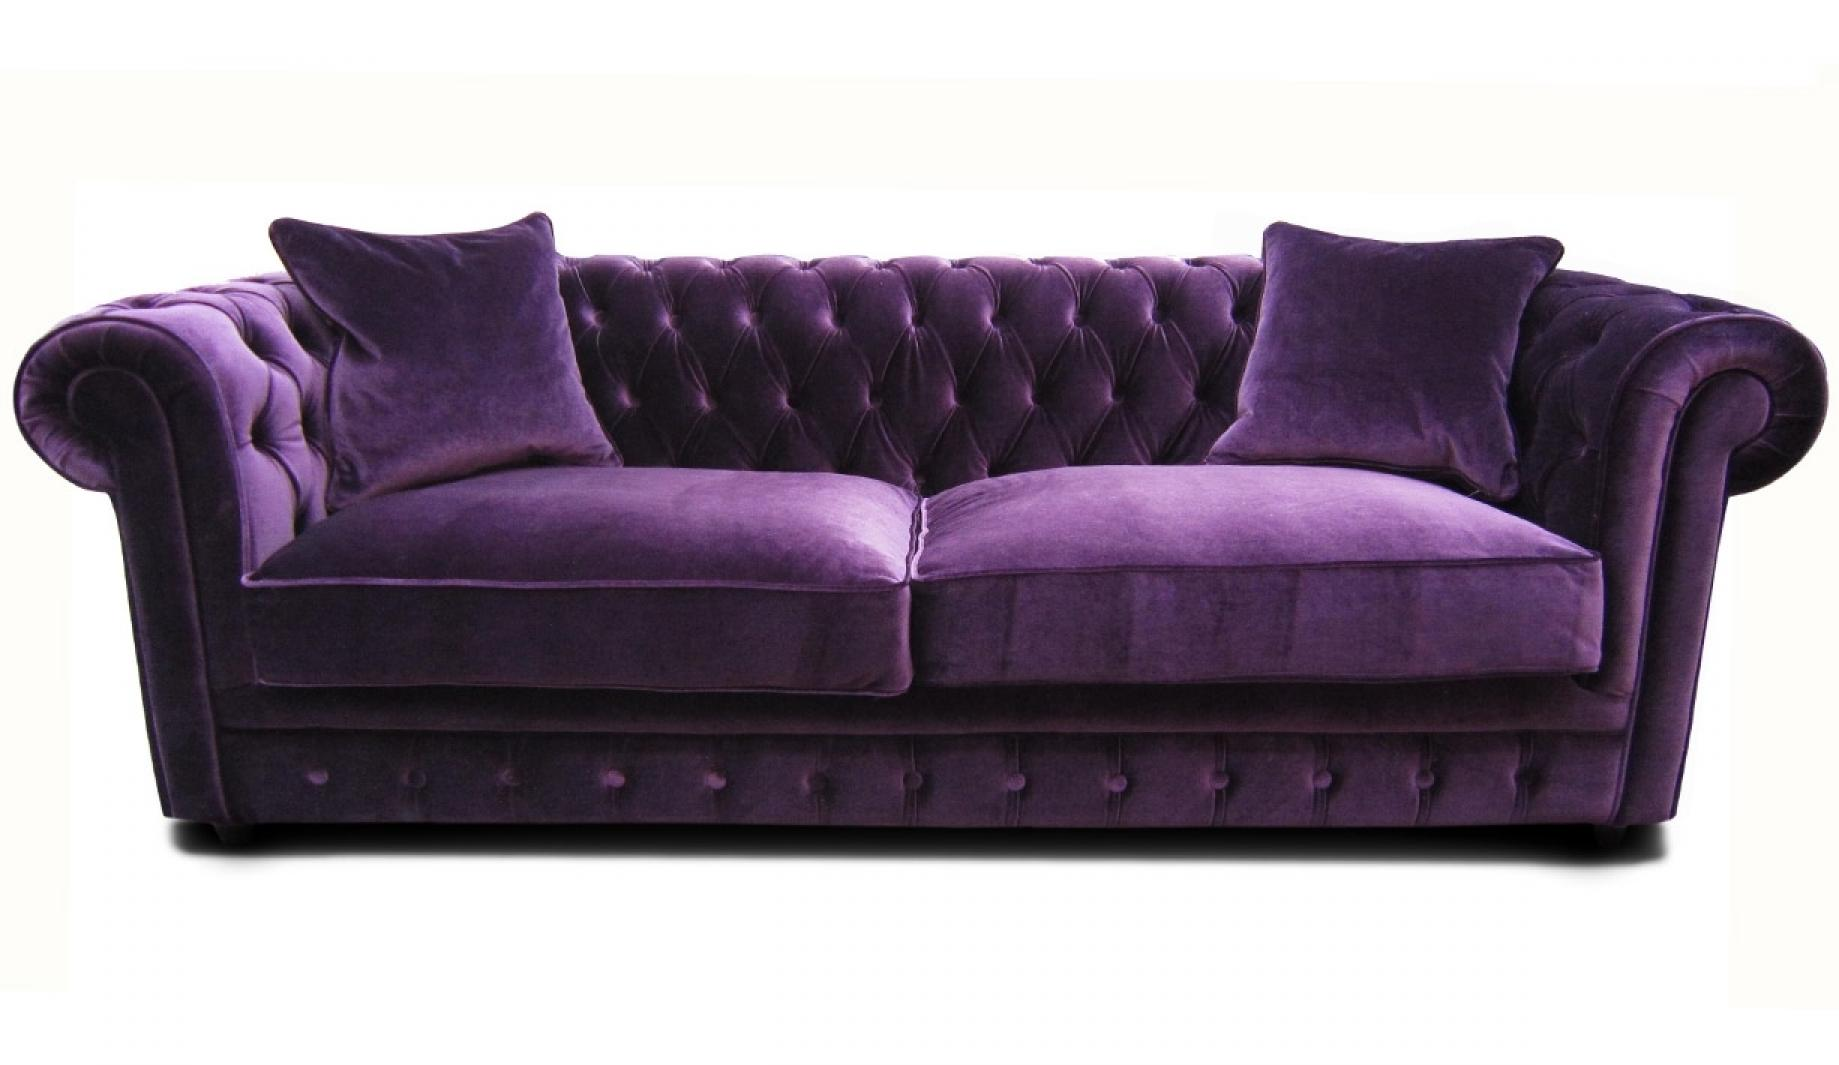 Photos canap chesterfield velours pas cher for Canape chesterfield en velours